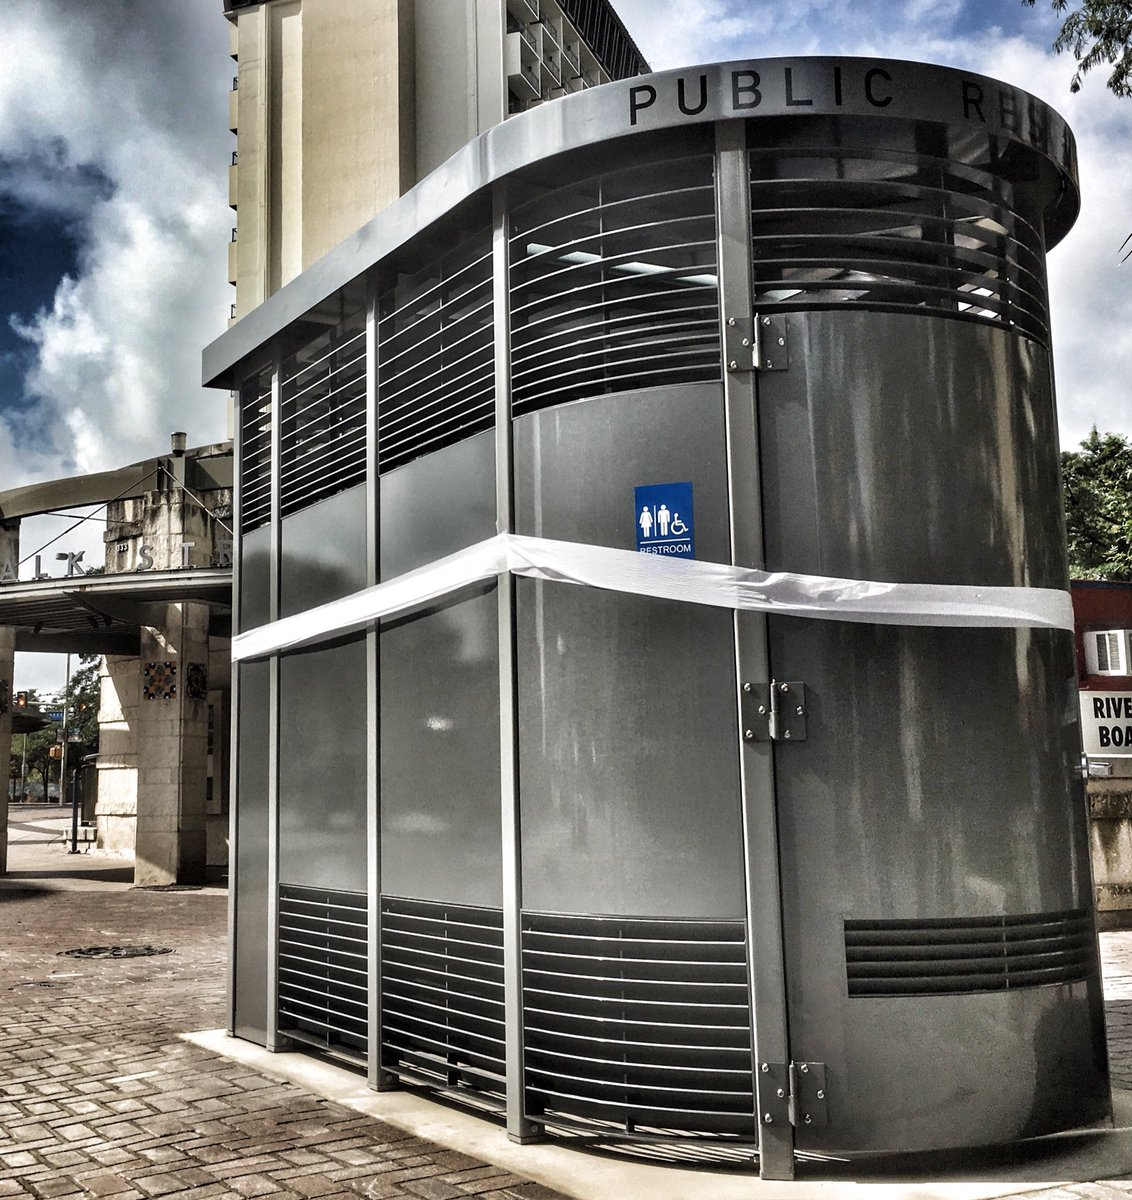 Are you in the LOOp? Check out SA's new public restroom at the corner of Alamo & Commerce